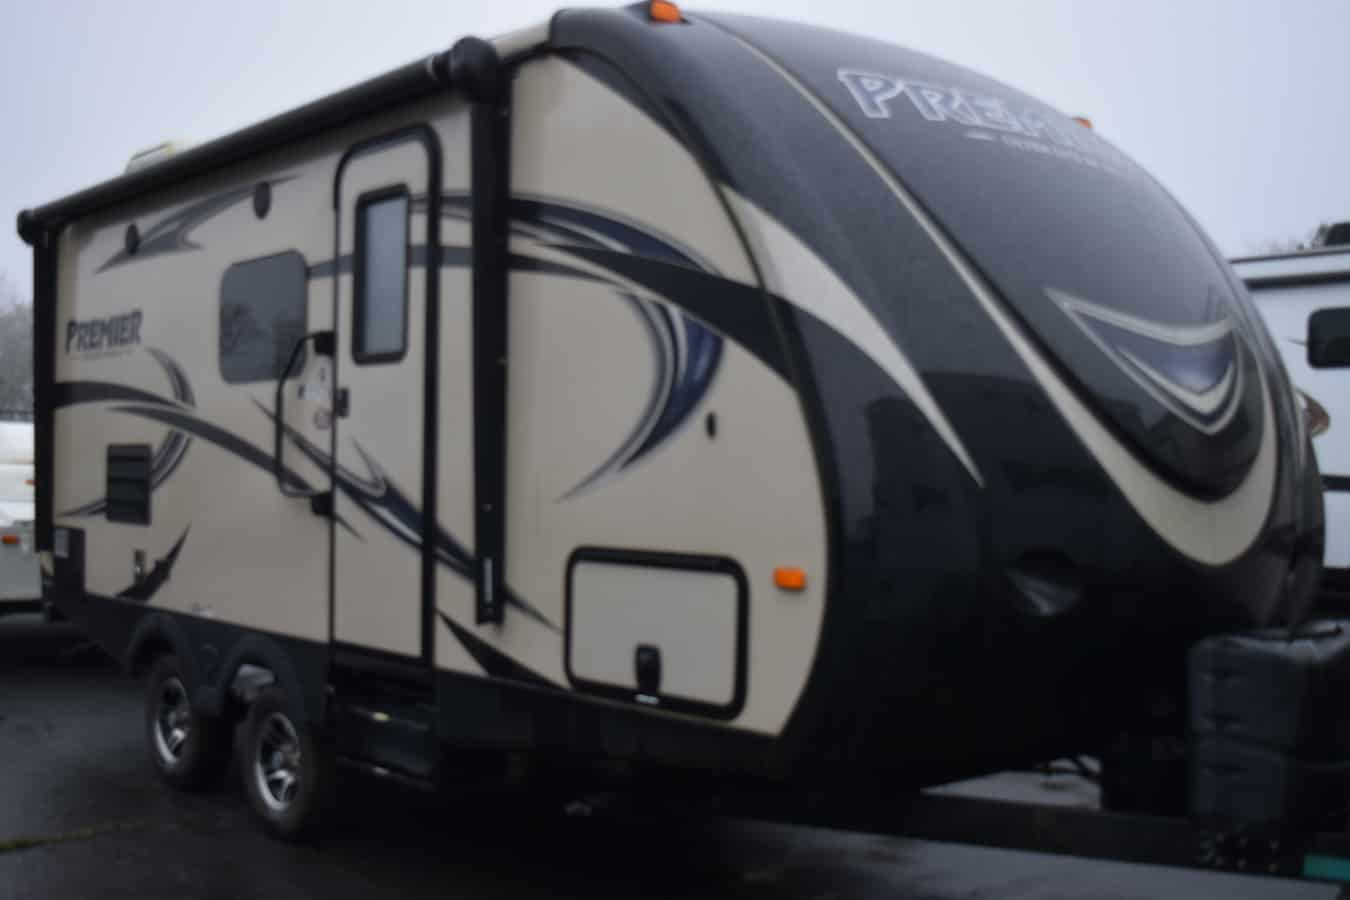 USED 2015 Keystone BULLET 19FBPR - Three Way Campers